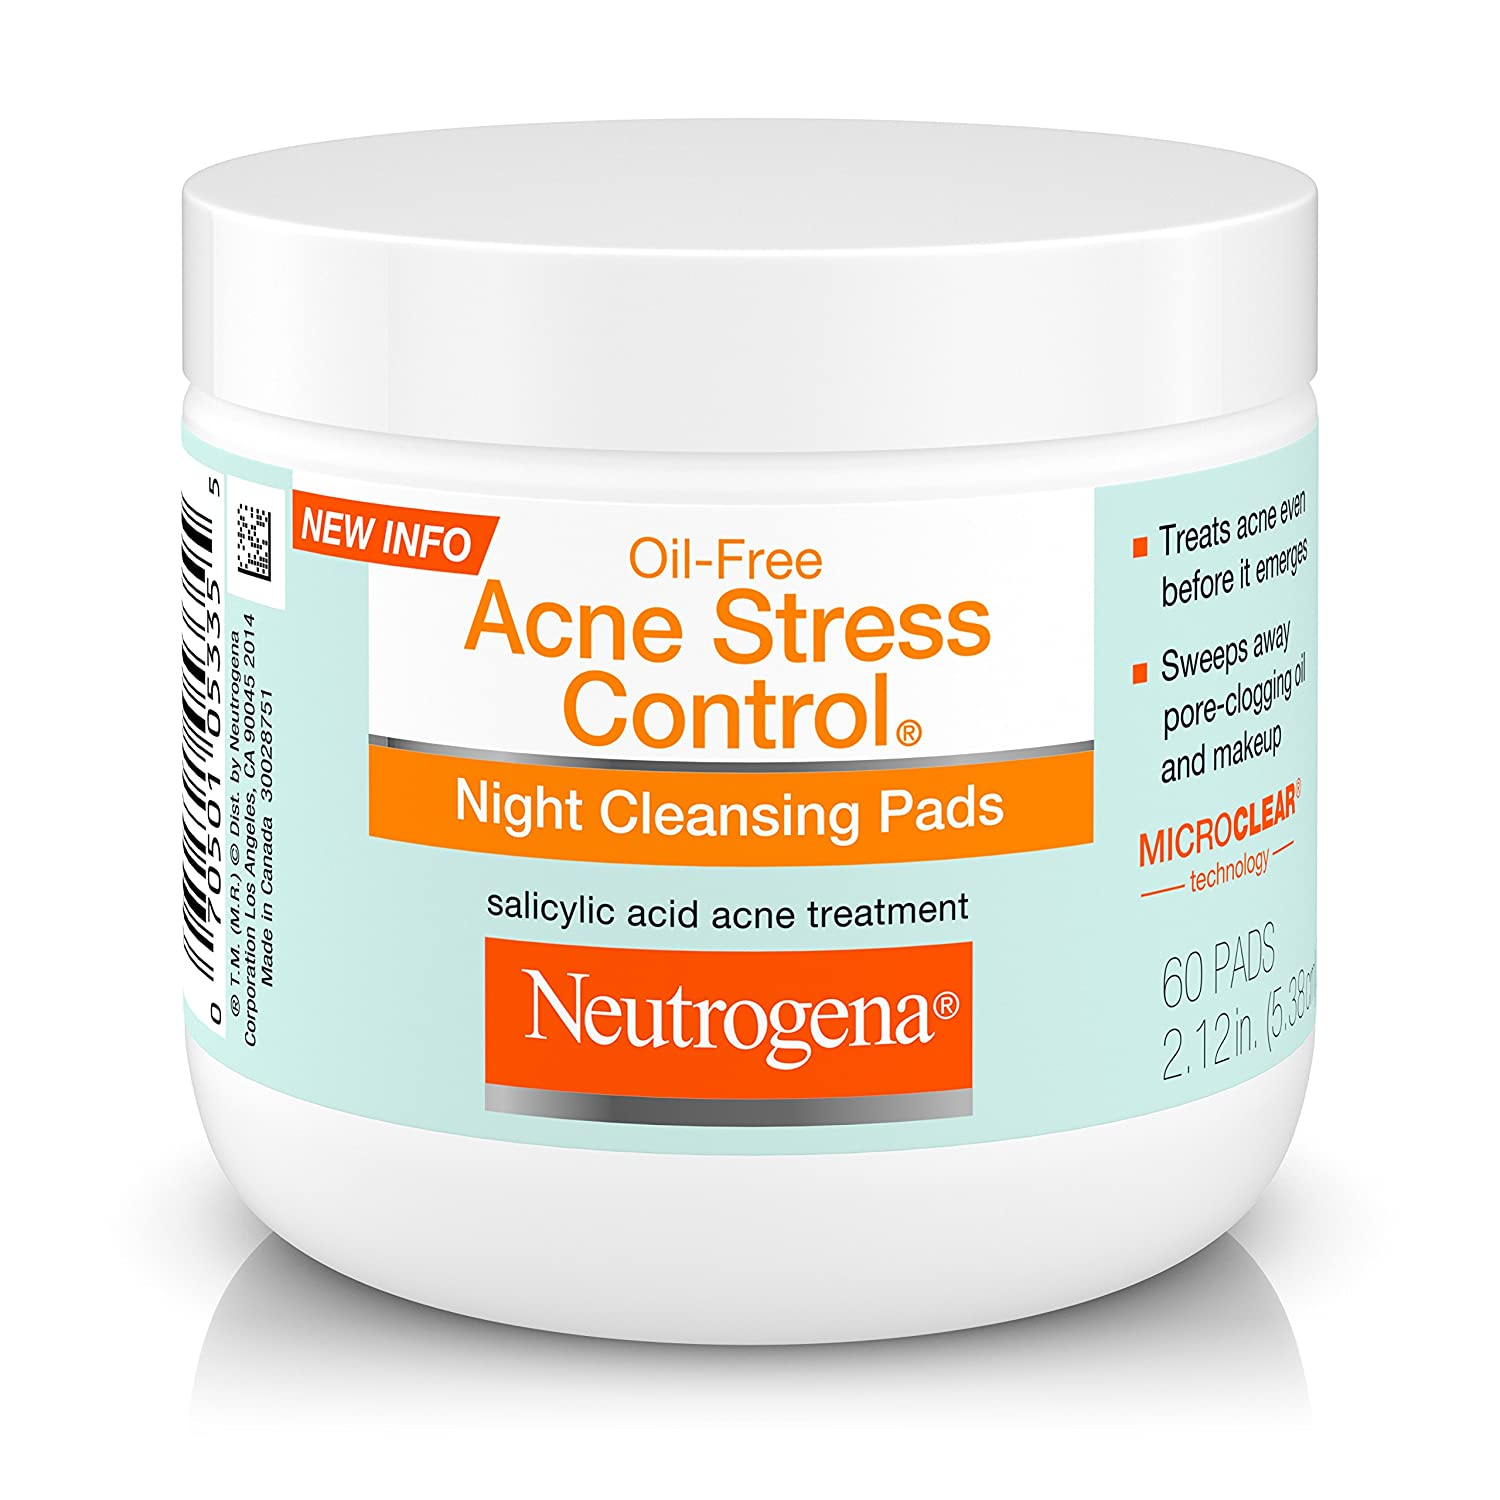 Neutrogena Oil-Free Acne Stress Control Night Cleansing Pads, 60 Count 070501053355